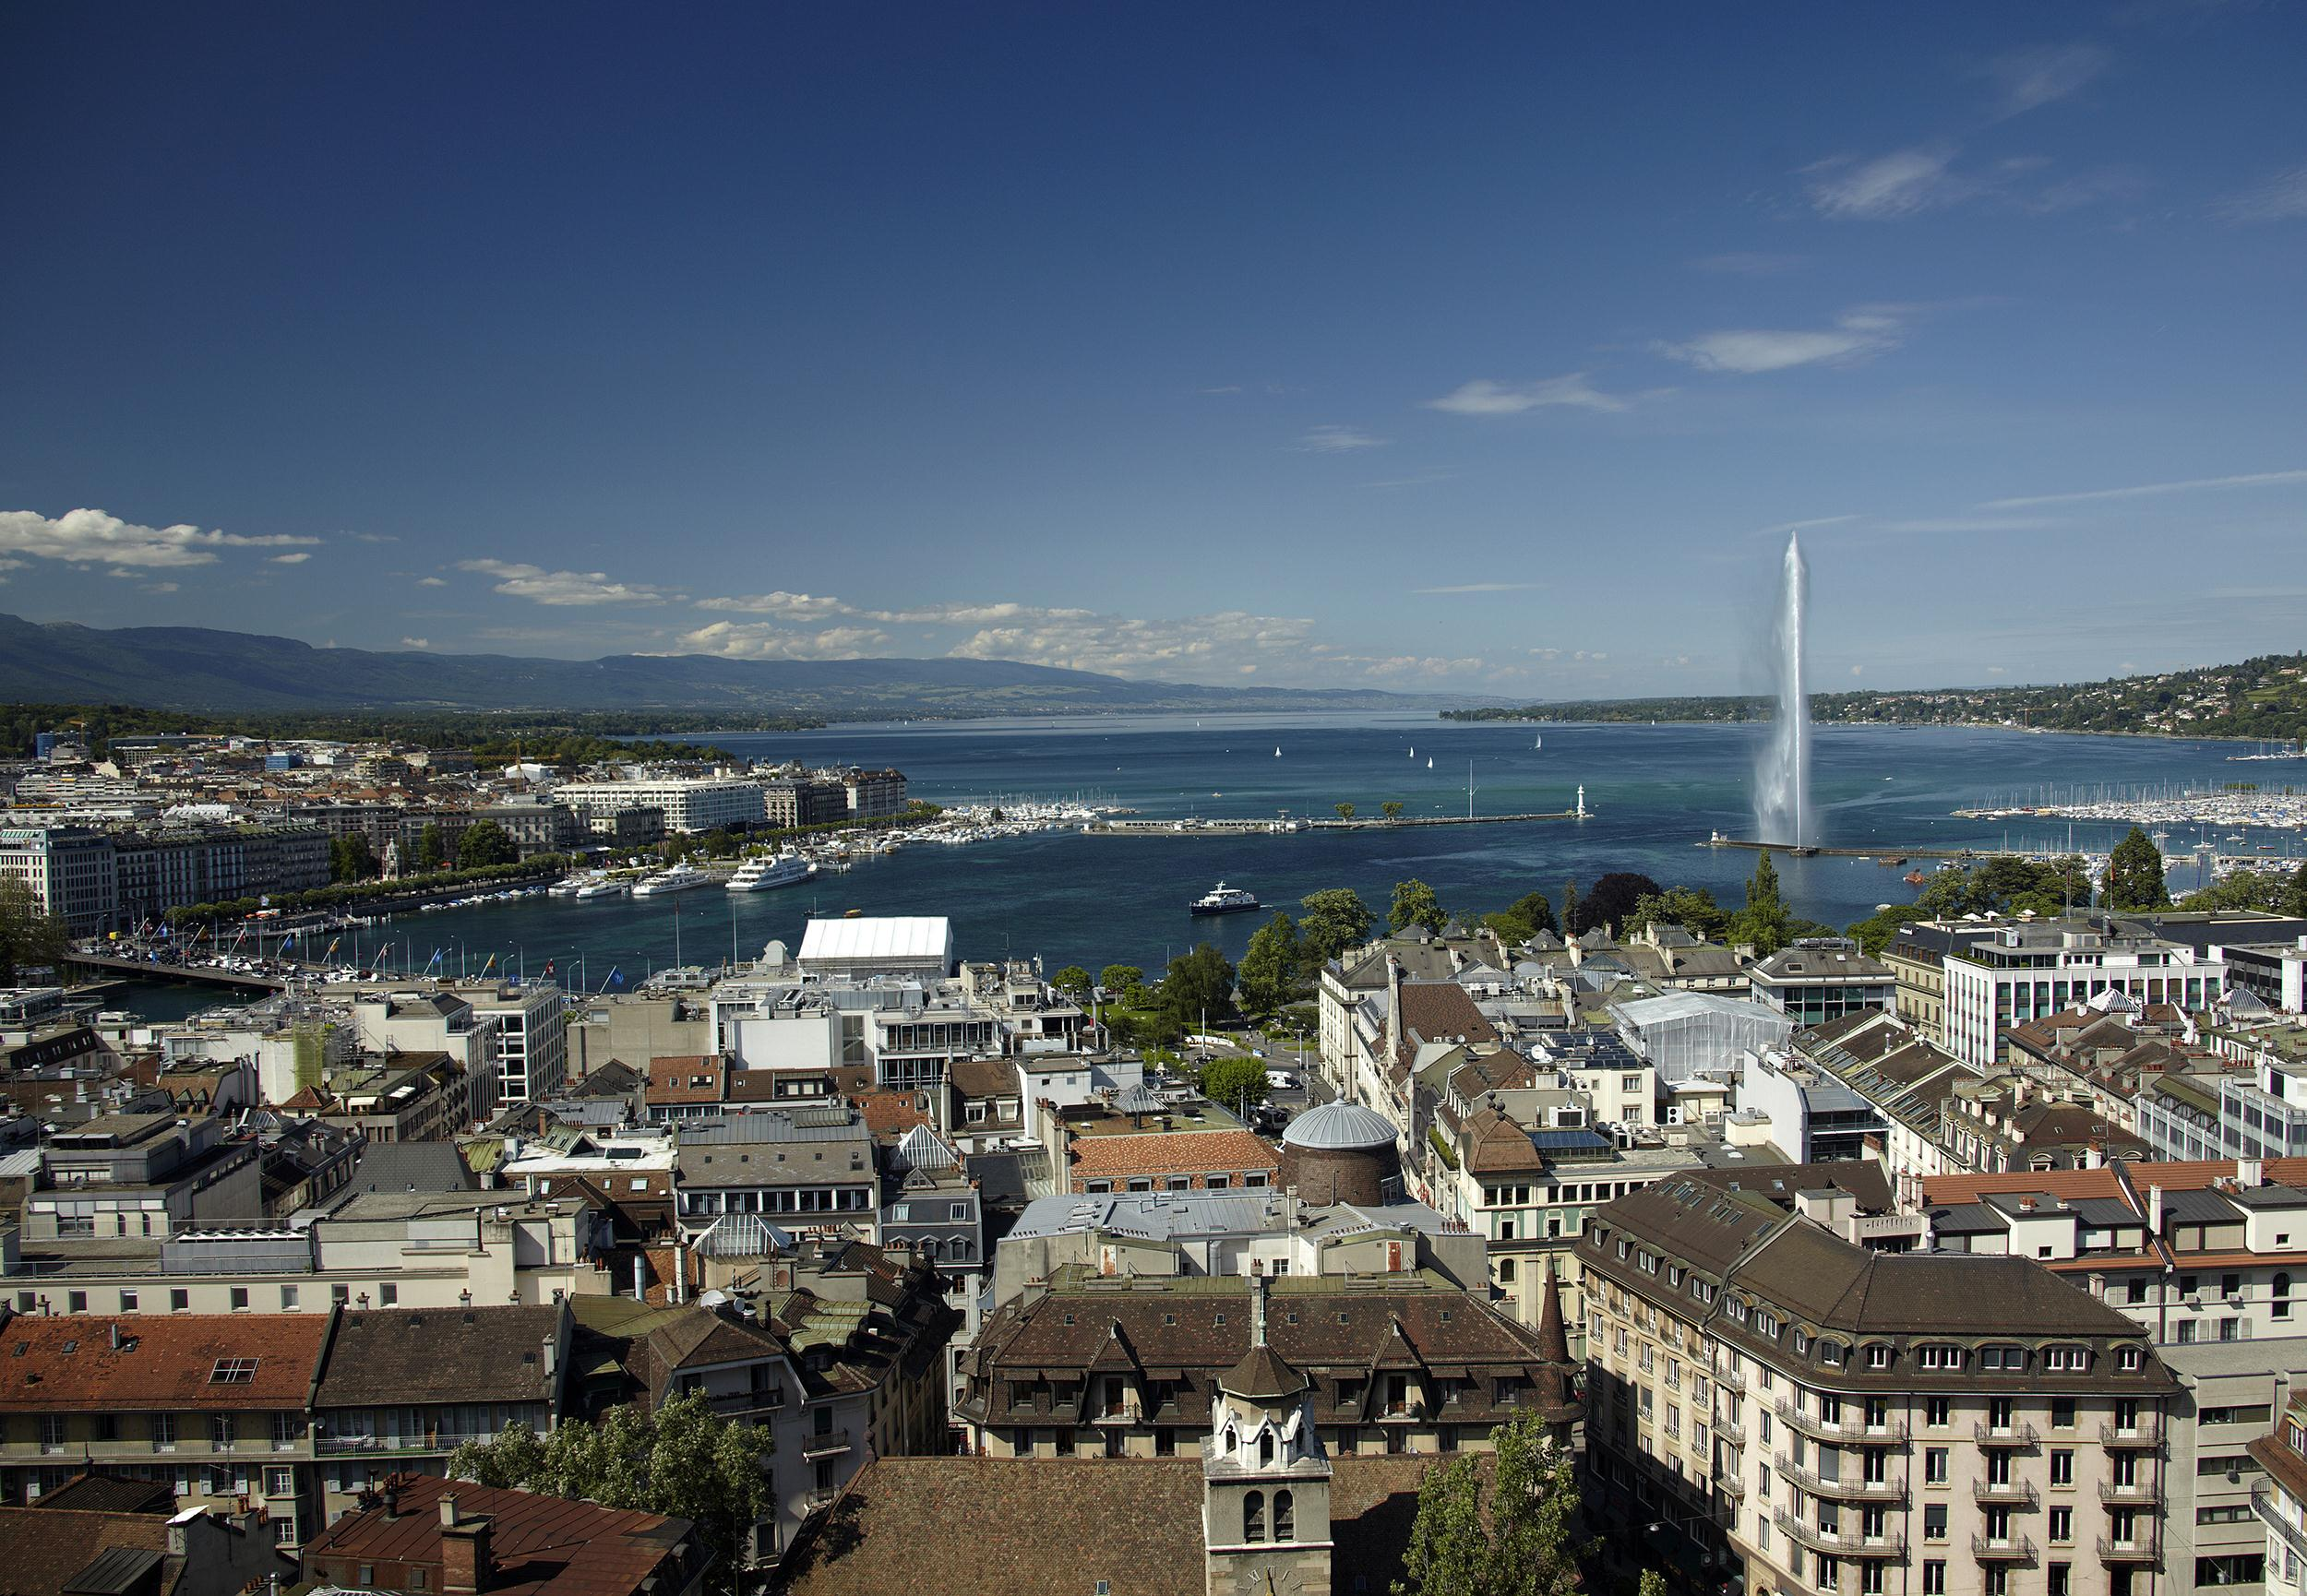 Overview picture shows Jet d'Eau and Lake Leman from the St-Pierre Cathedrale in Geneva